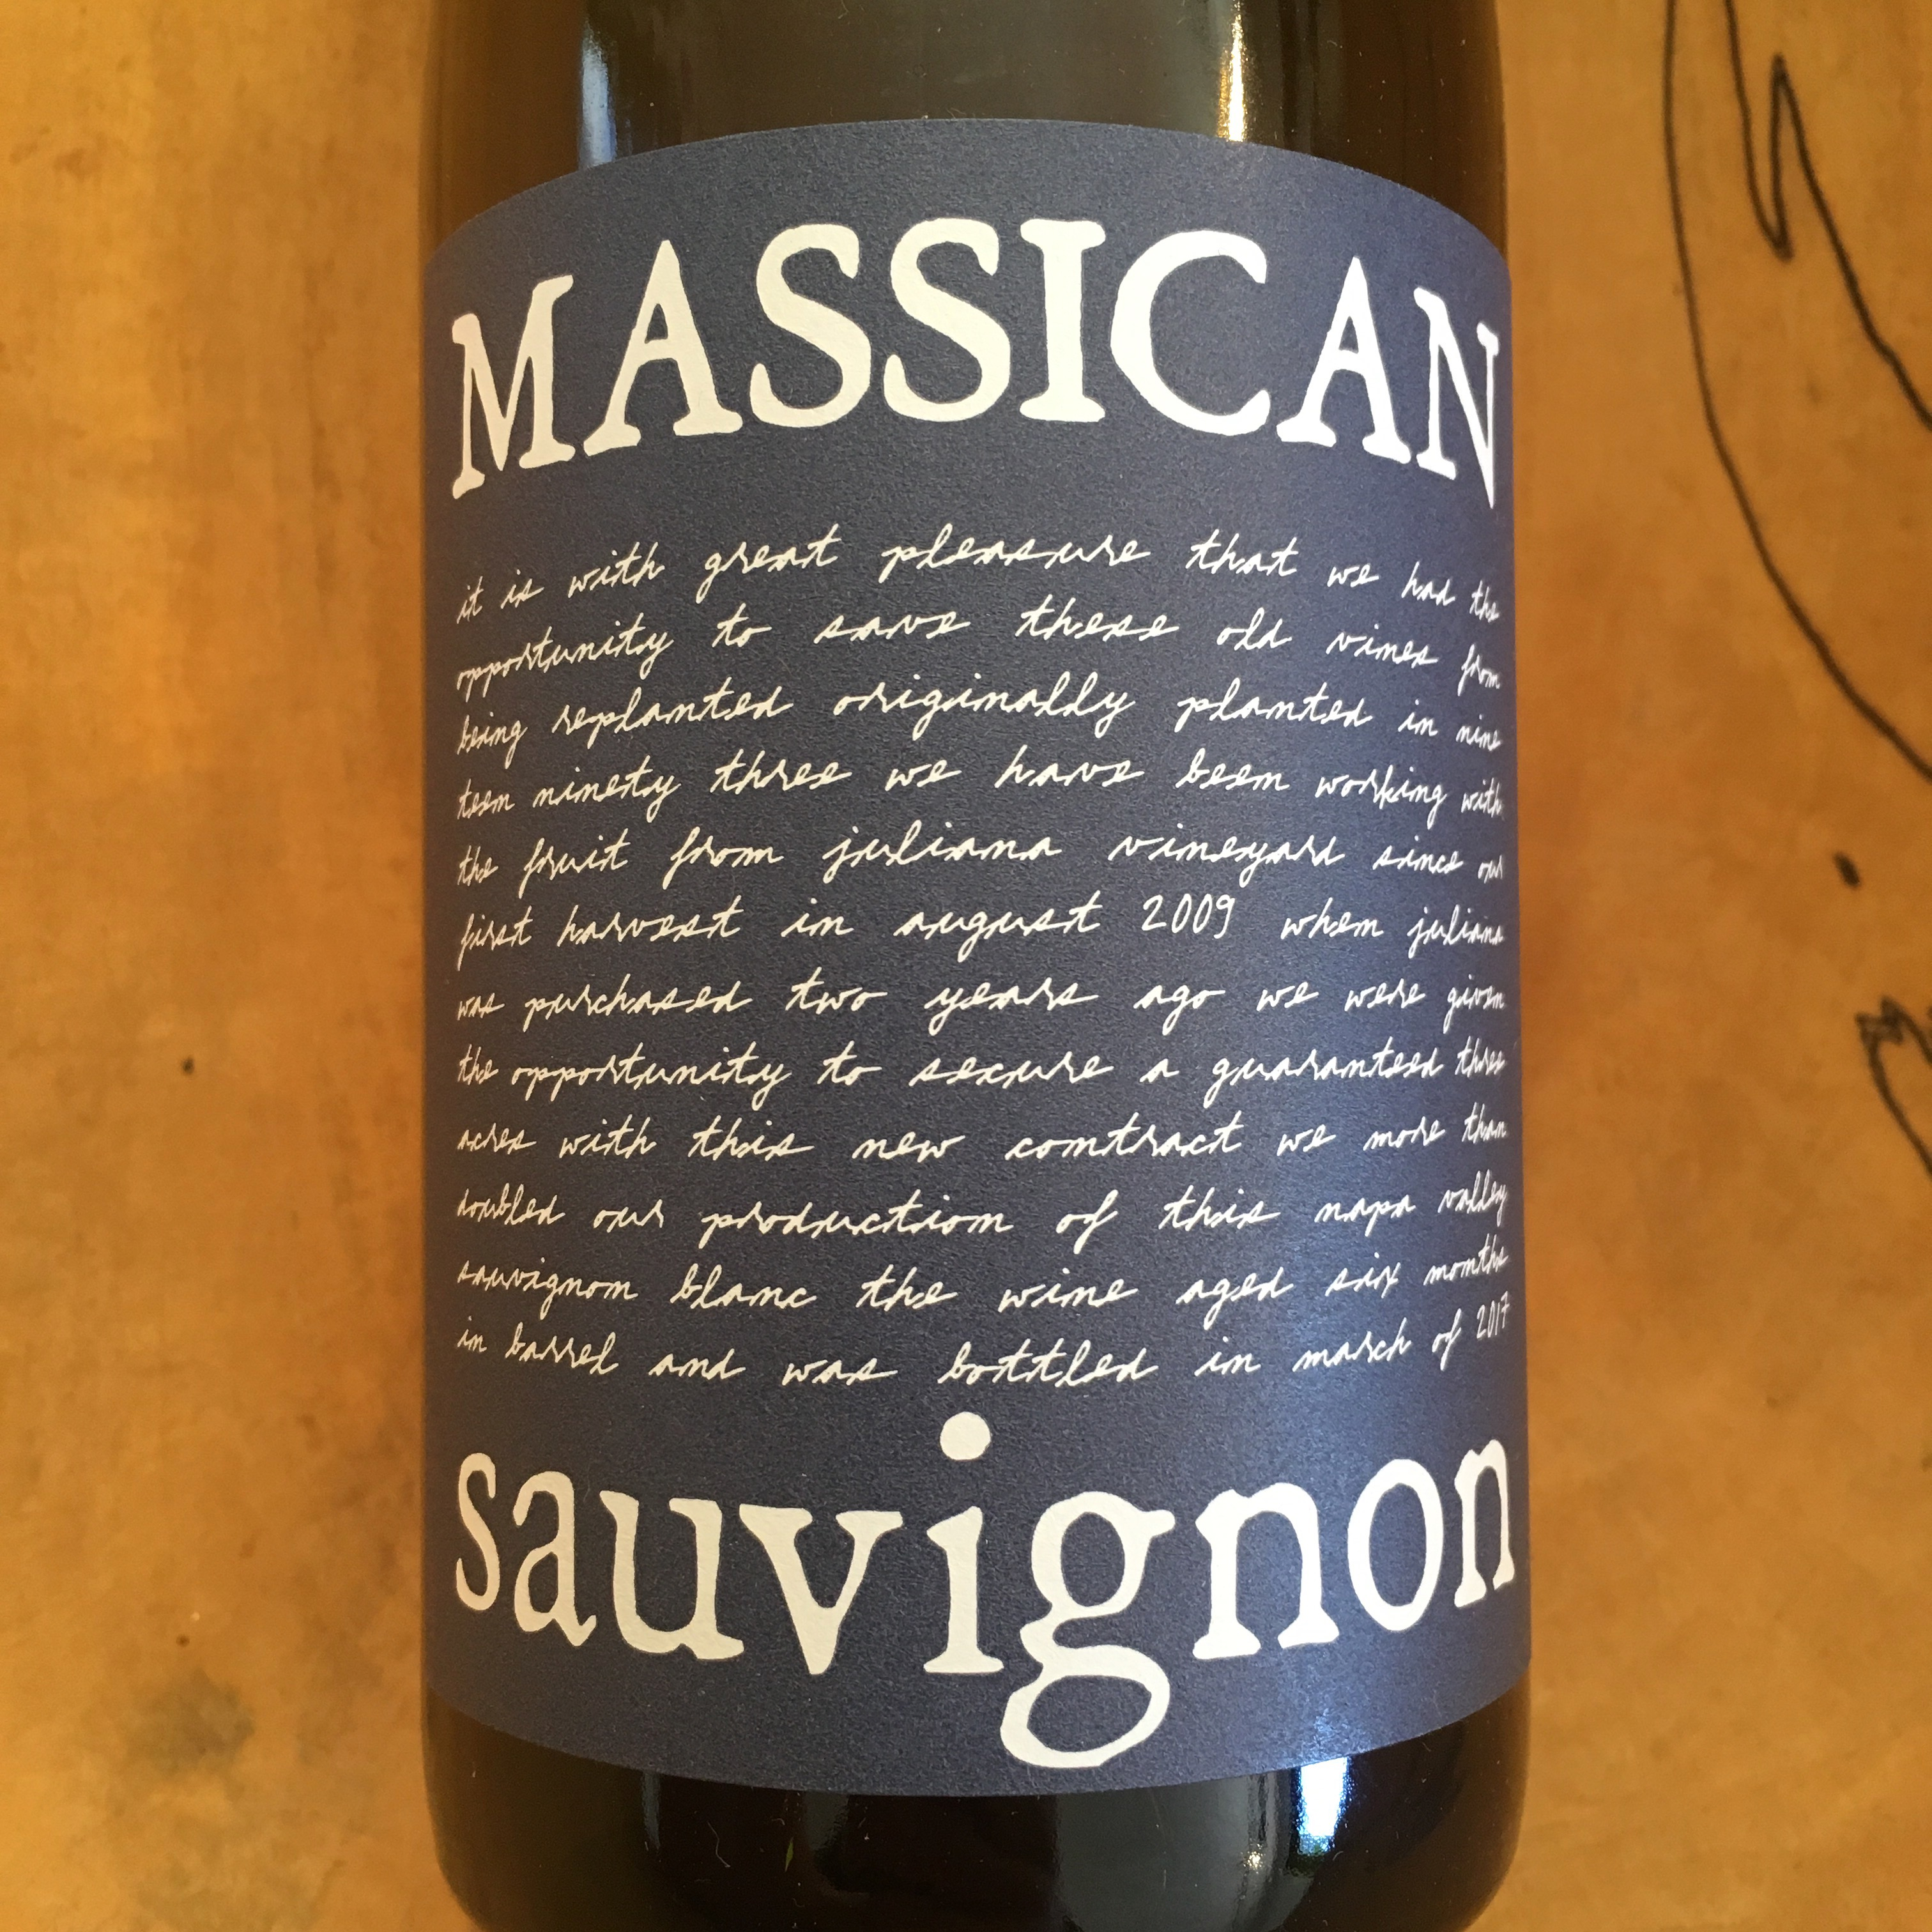 Massican Sauvignon Blanc 2016 Pope Valley - K. Laz Wine Collection